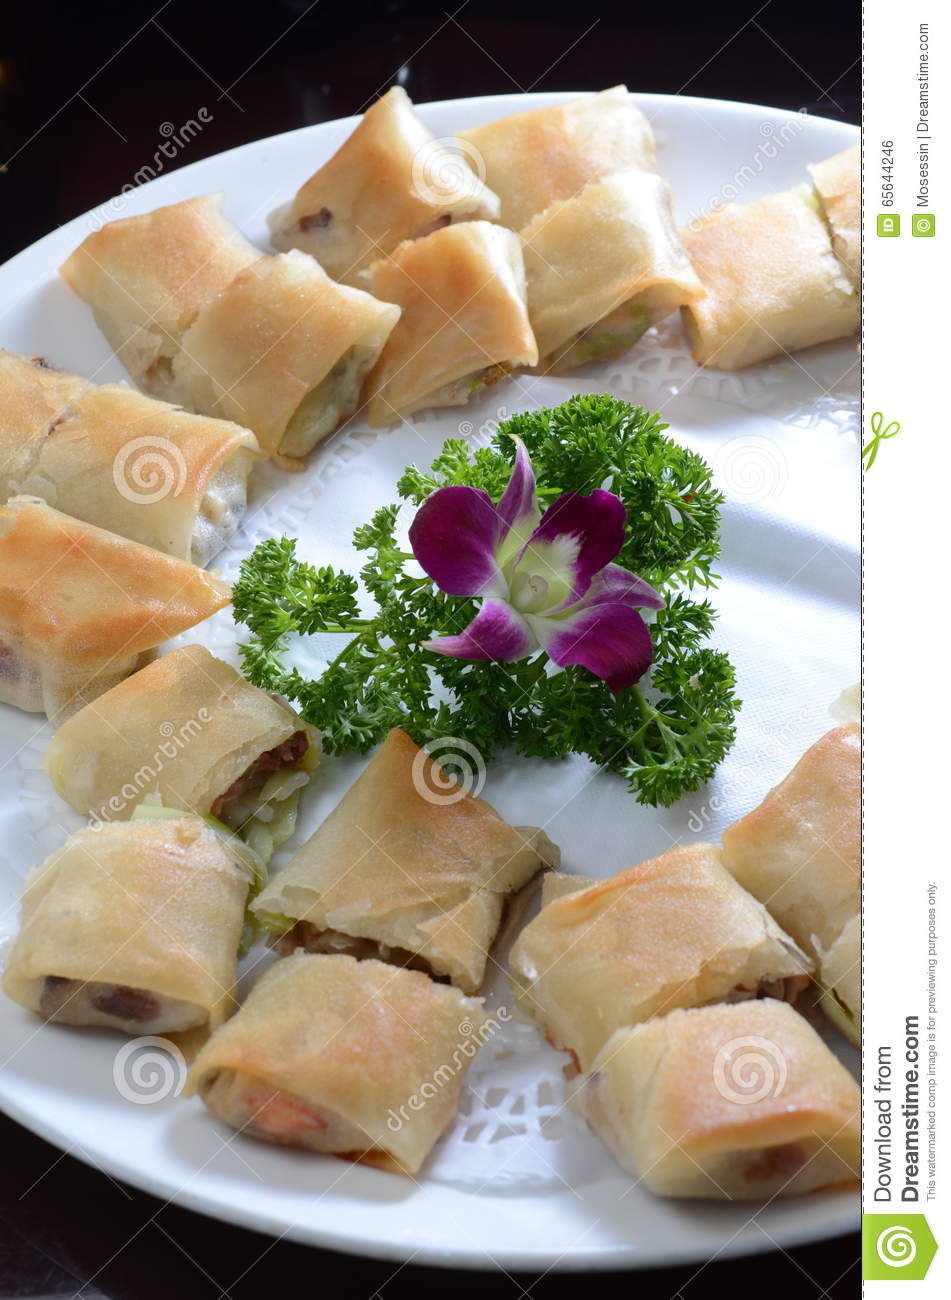 Fried Spring Roll Stock Photo Image Of Dessert Decoration 65644246